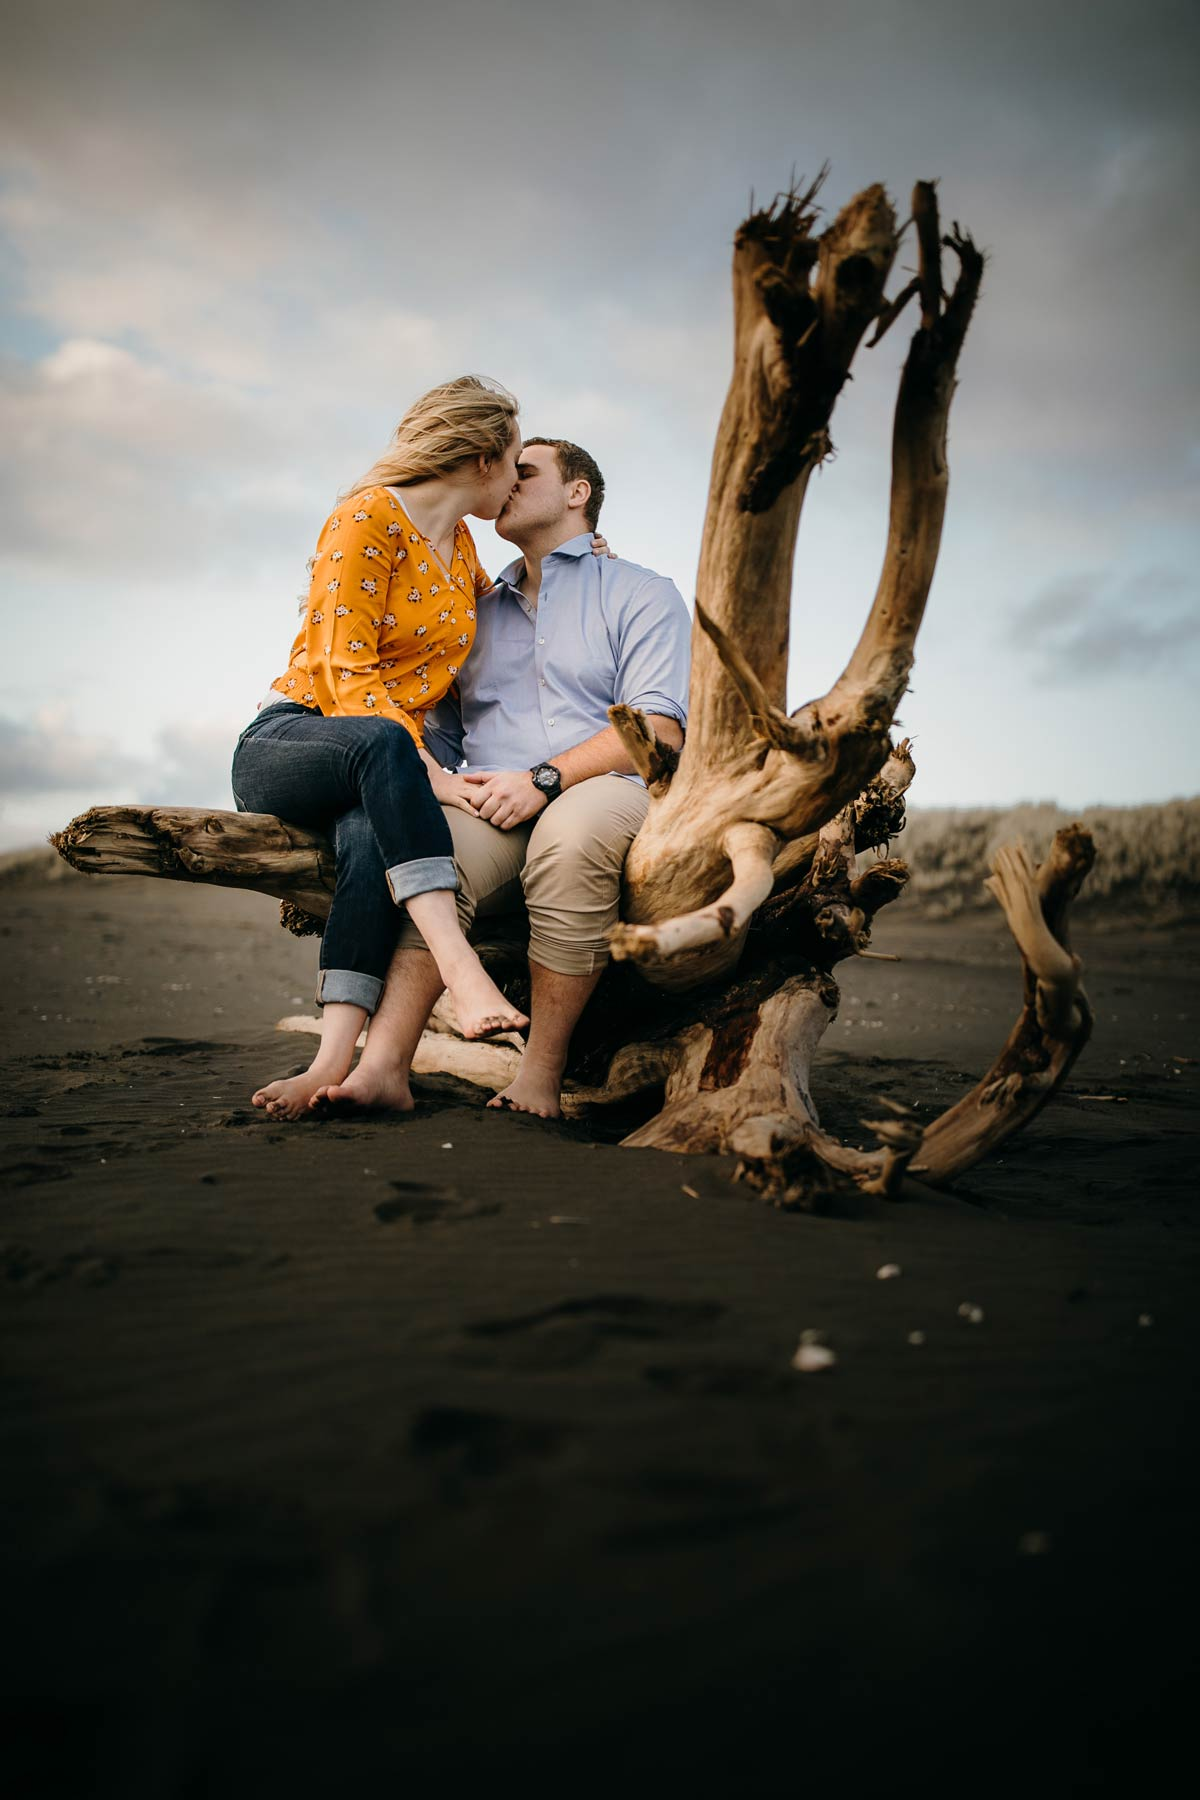 couple sitting and kissing on driftwood log at muriwai beach auckland new zealand during a golden light evening lifestyle engagment pre-wedding photoshoot session by sarah weber photography